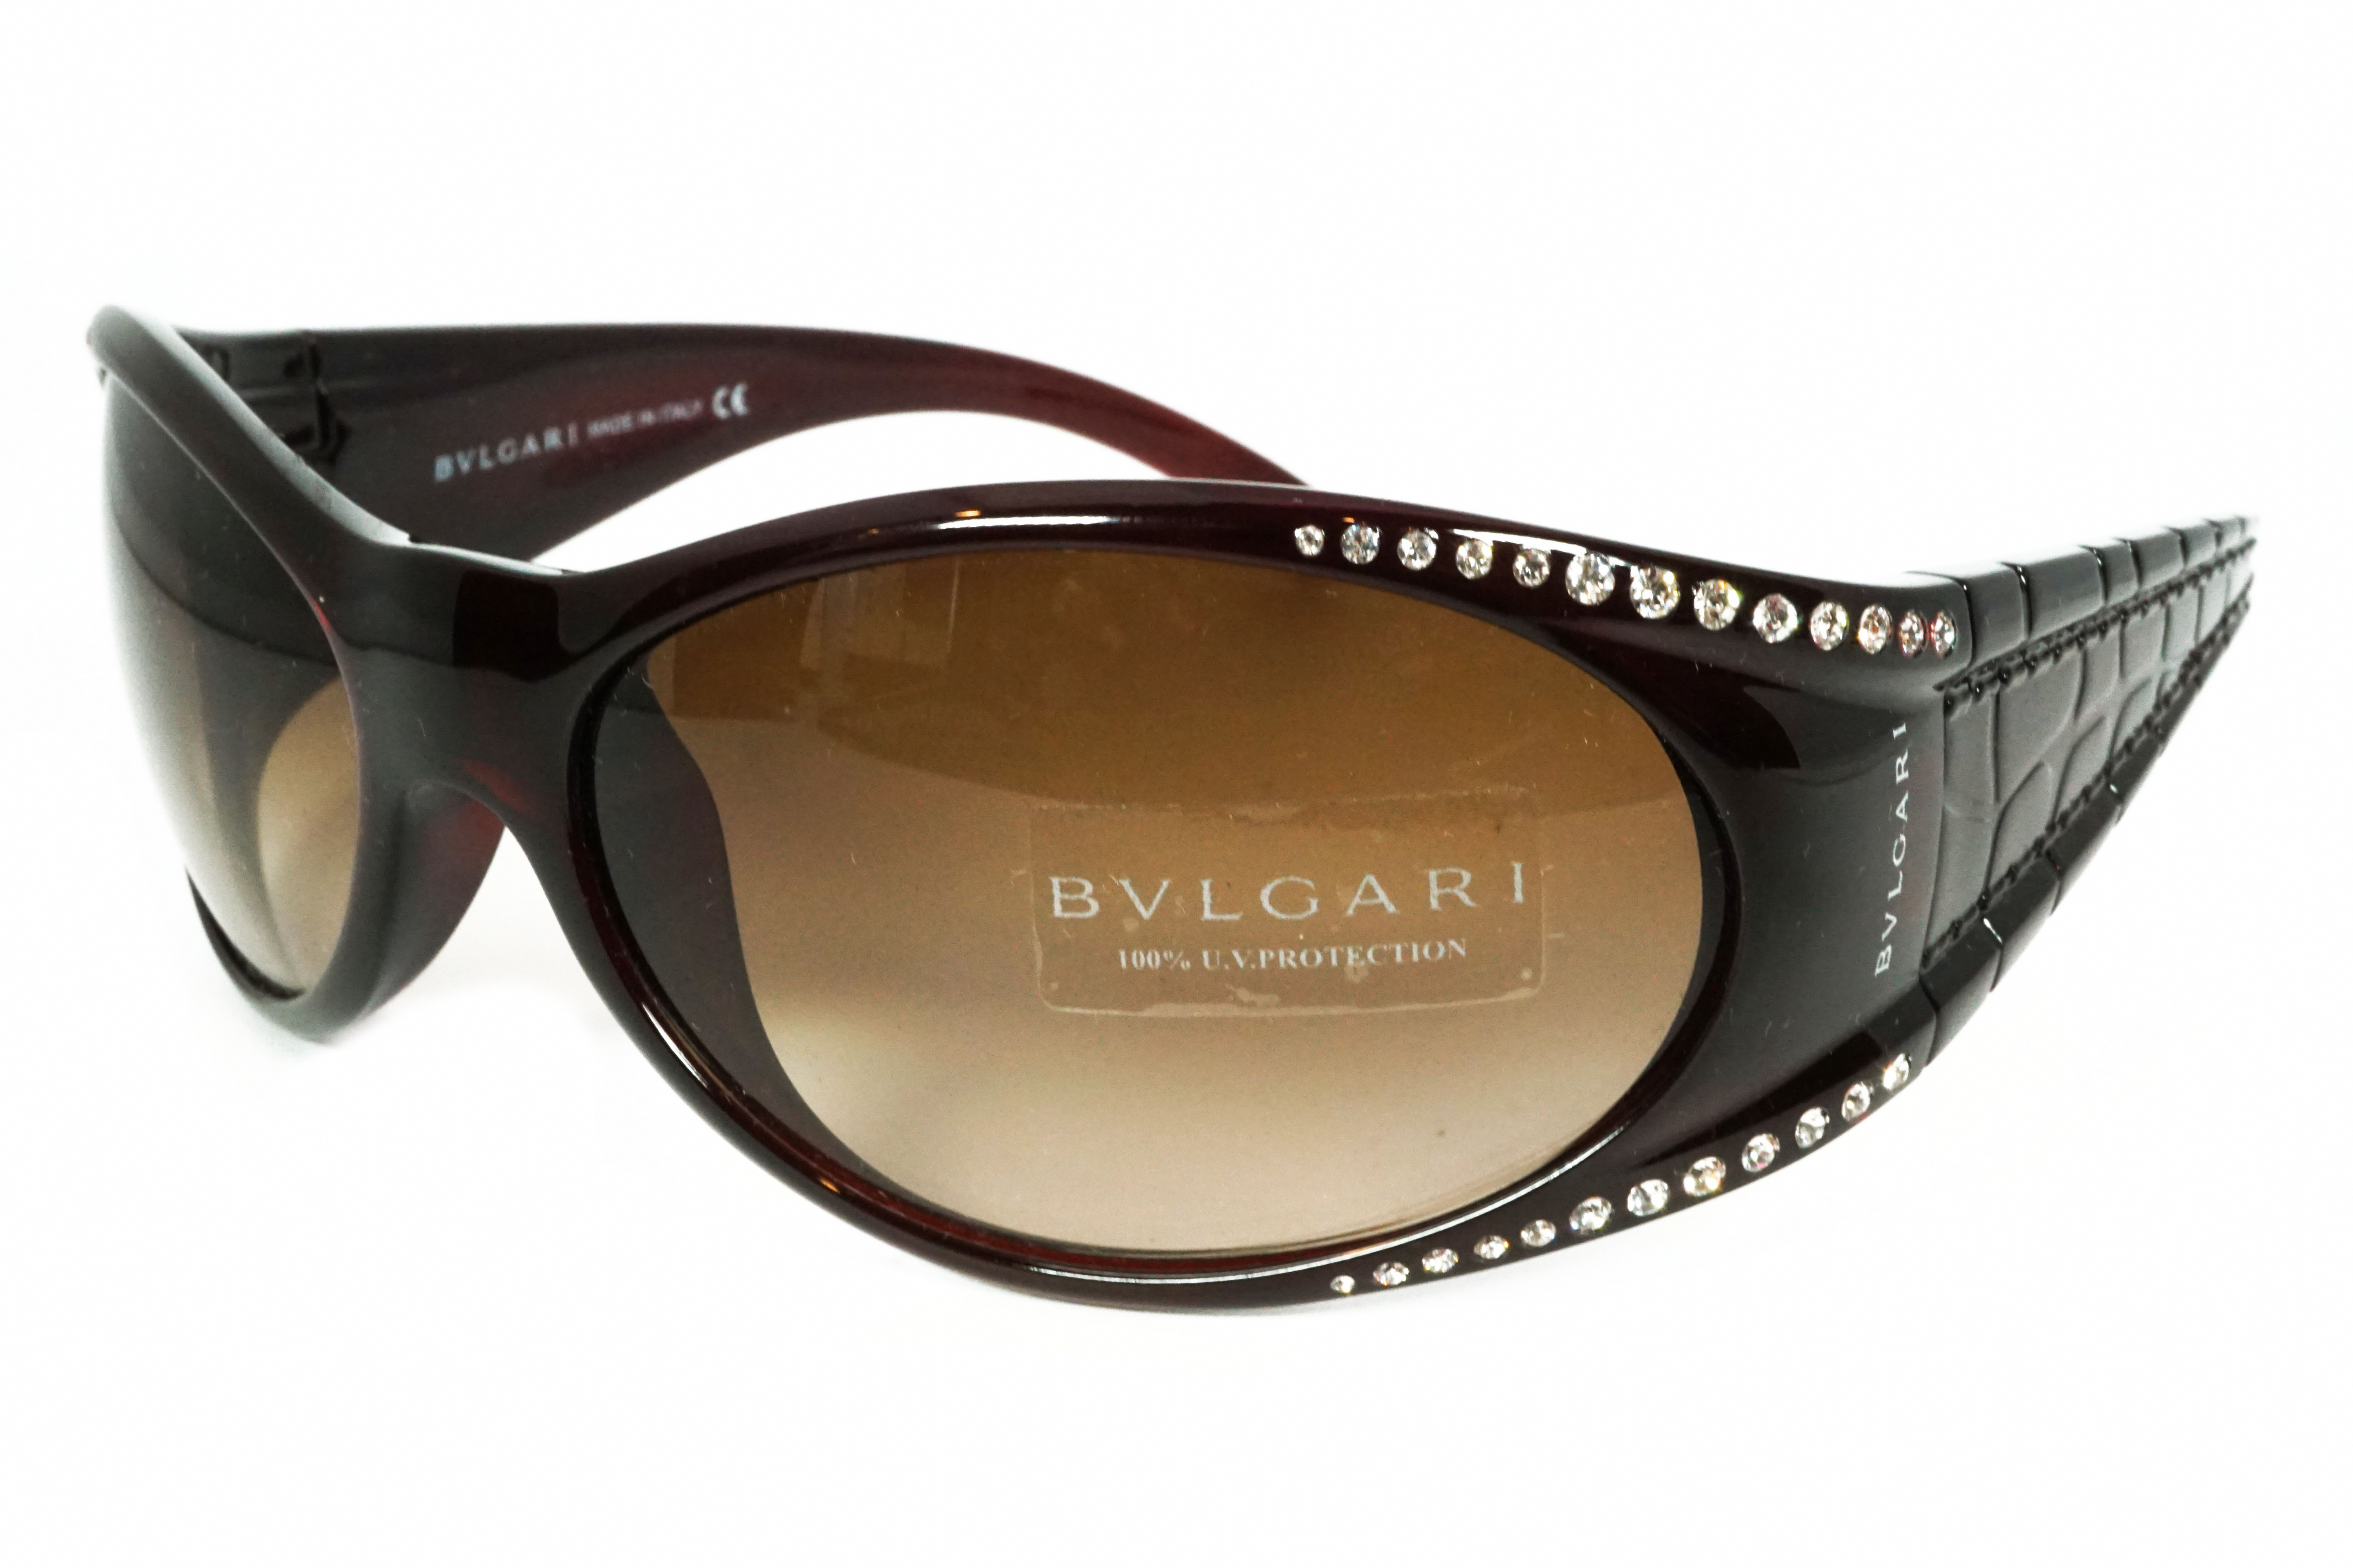 BVLGARI 855B in color 94813